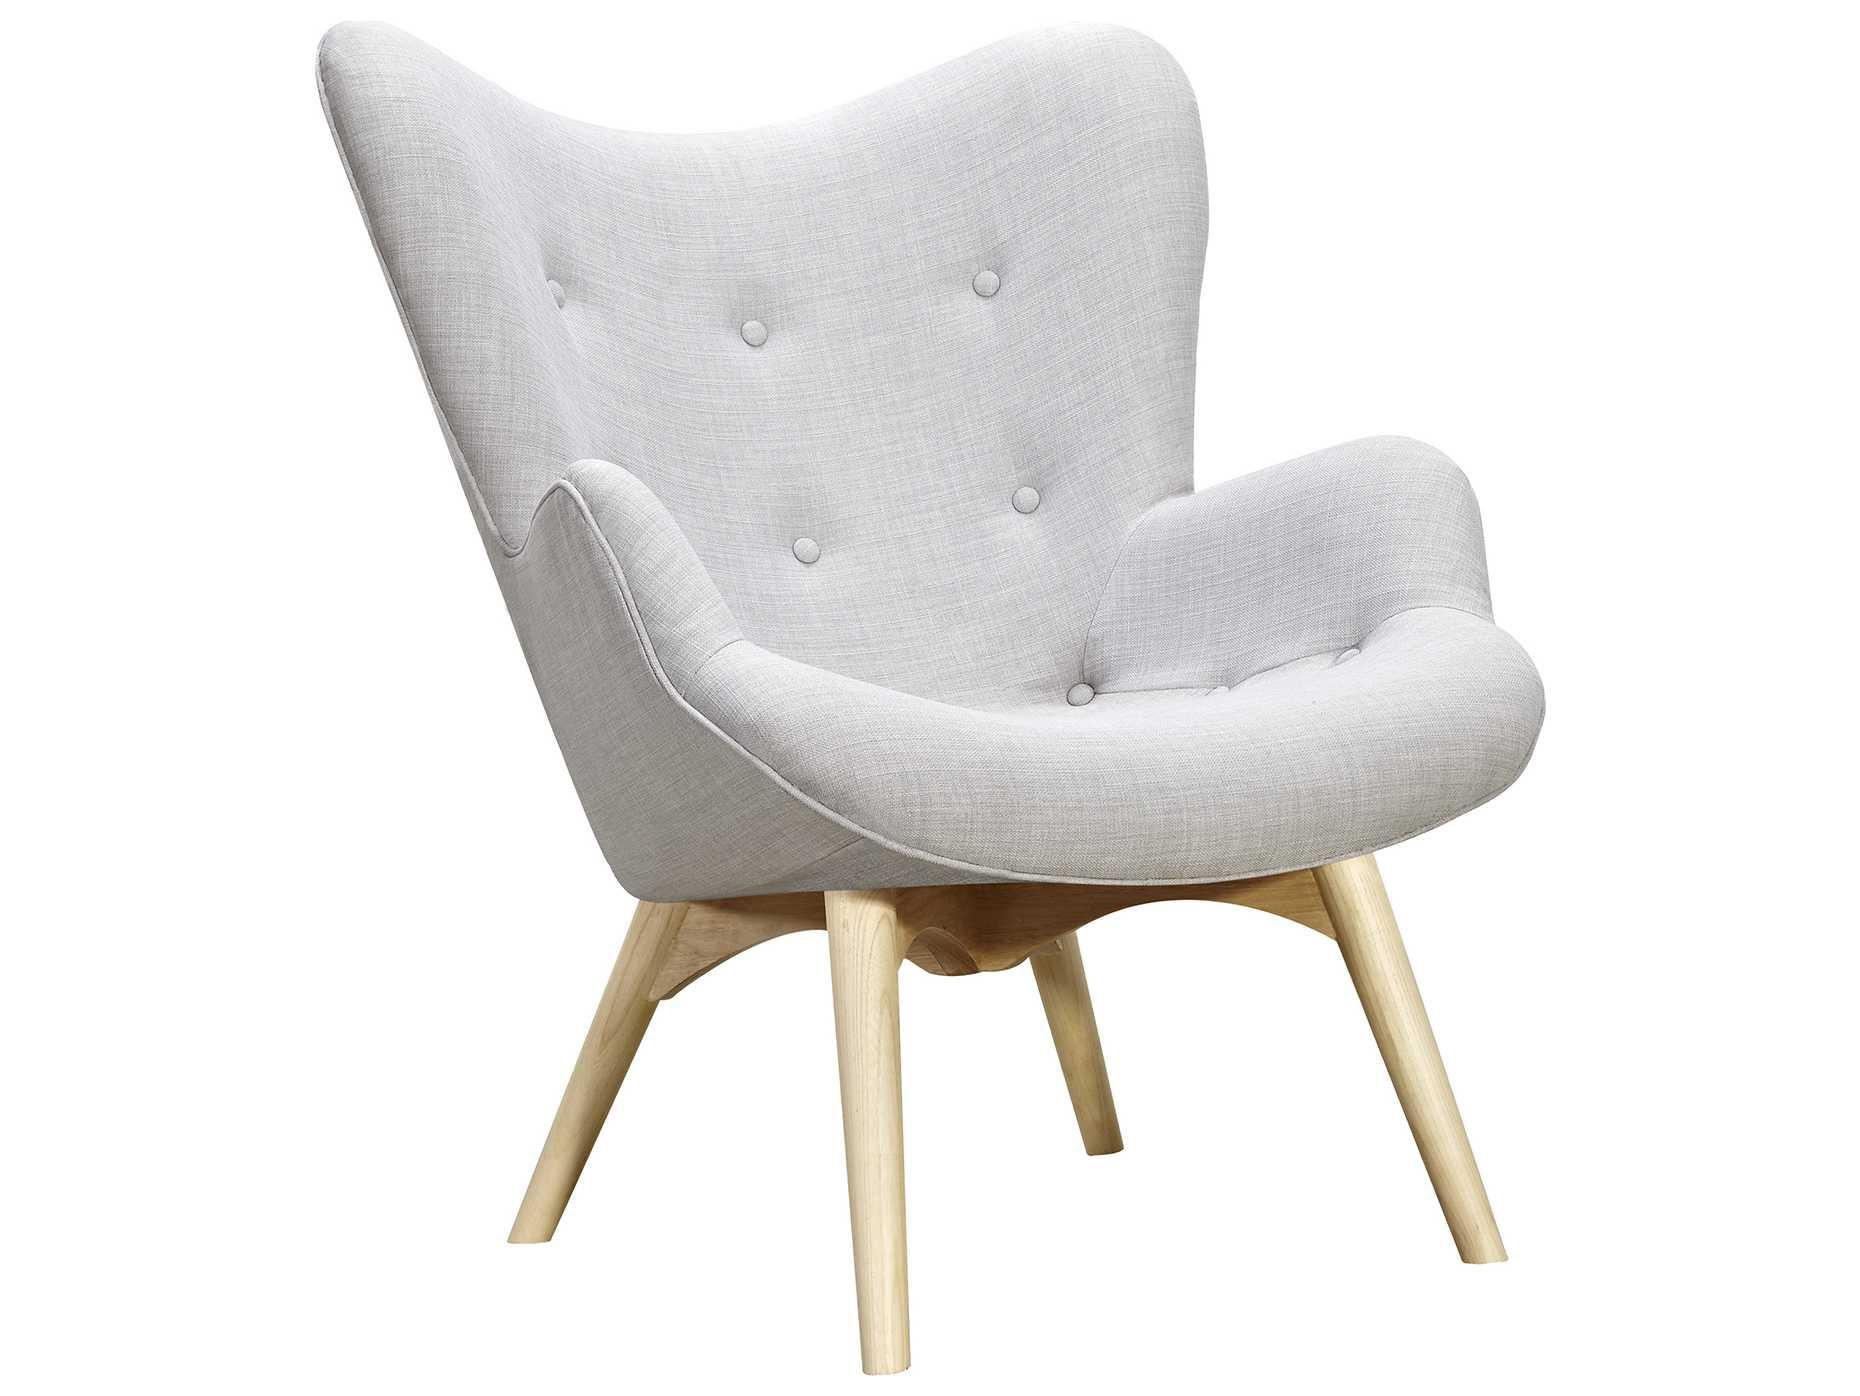 Nyekoncept Aiden Glacier White Accent Chair & Ottoman With Natural Inside Aidan Ii Swivel Accent Chairs (Image 15 of 20)